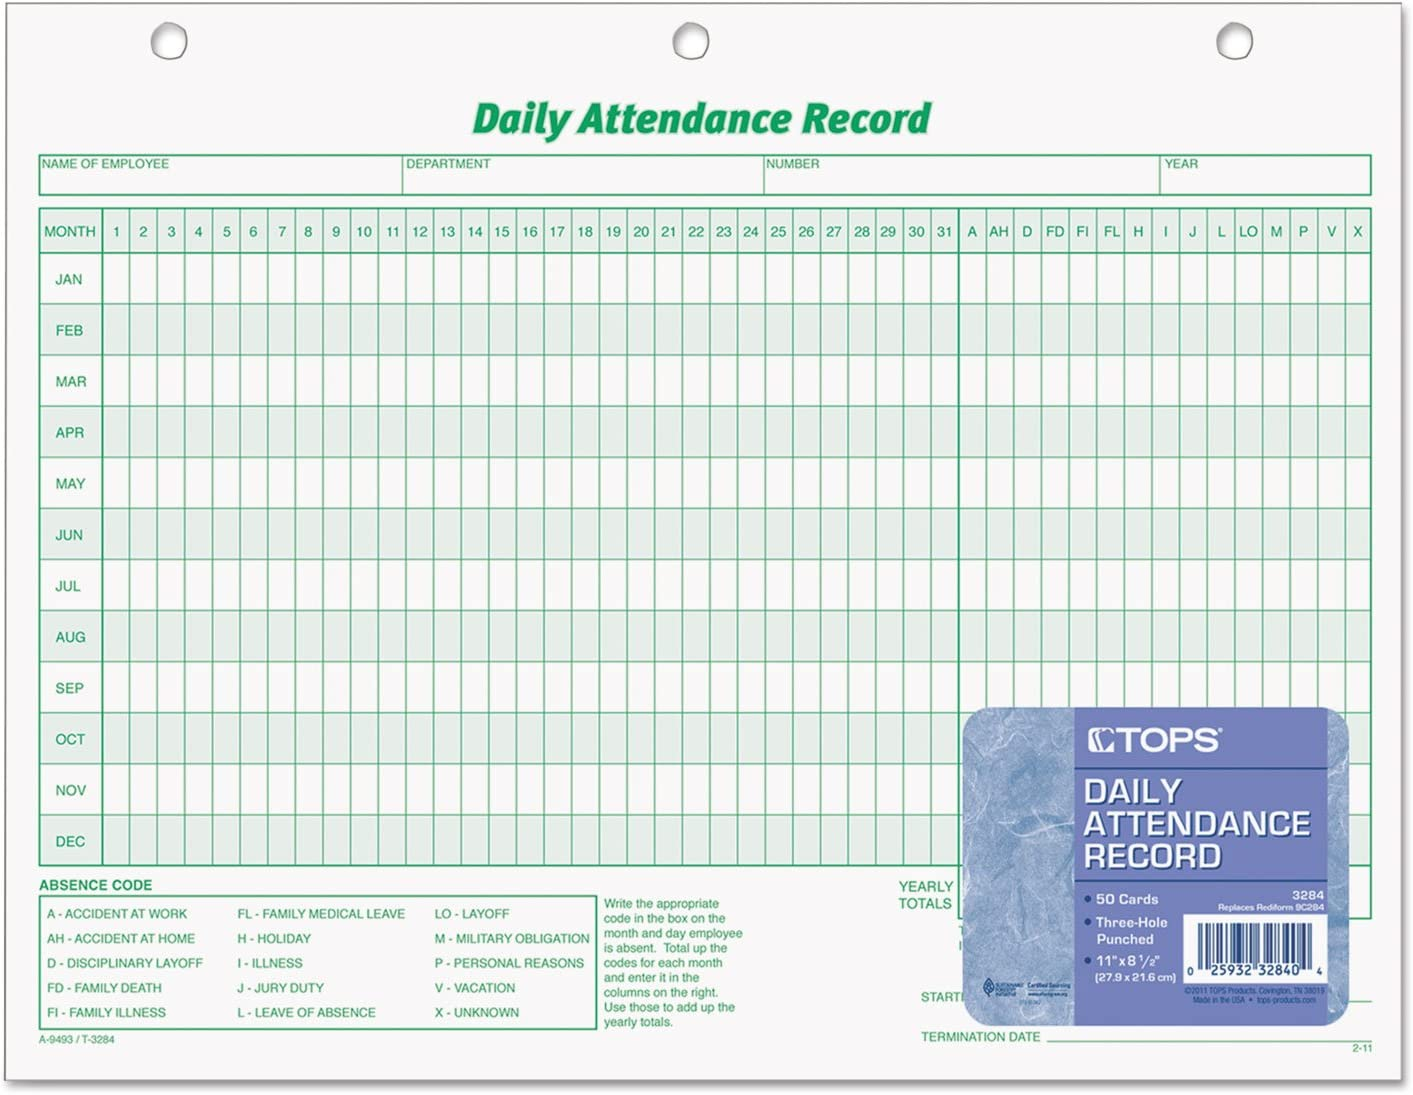 Daily Attendance Card TOP3284